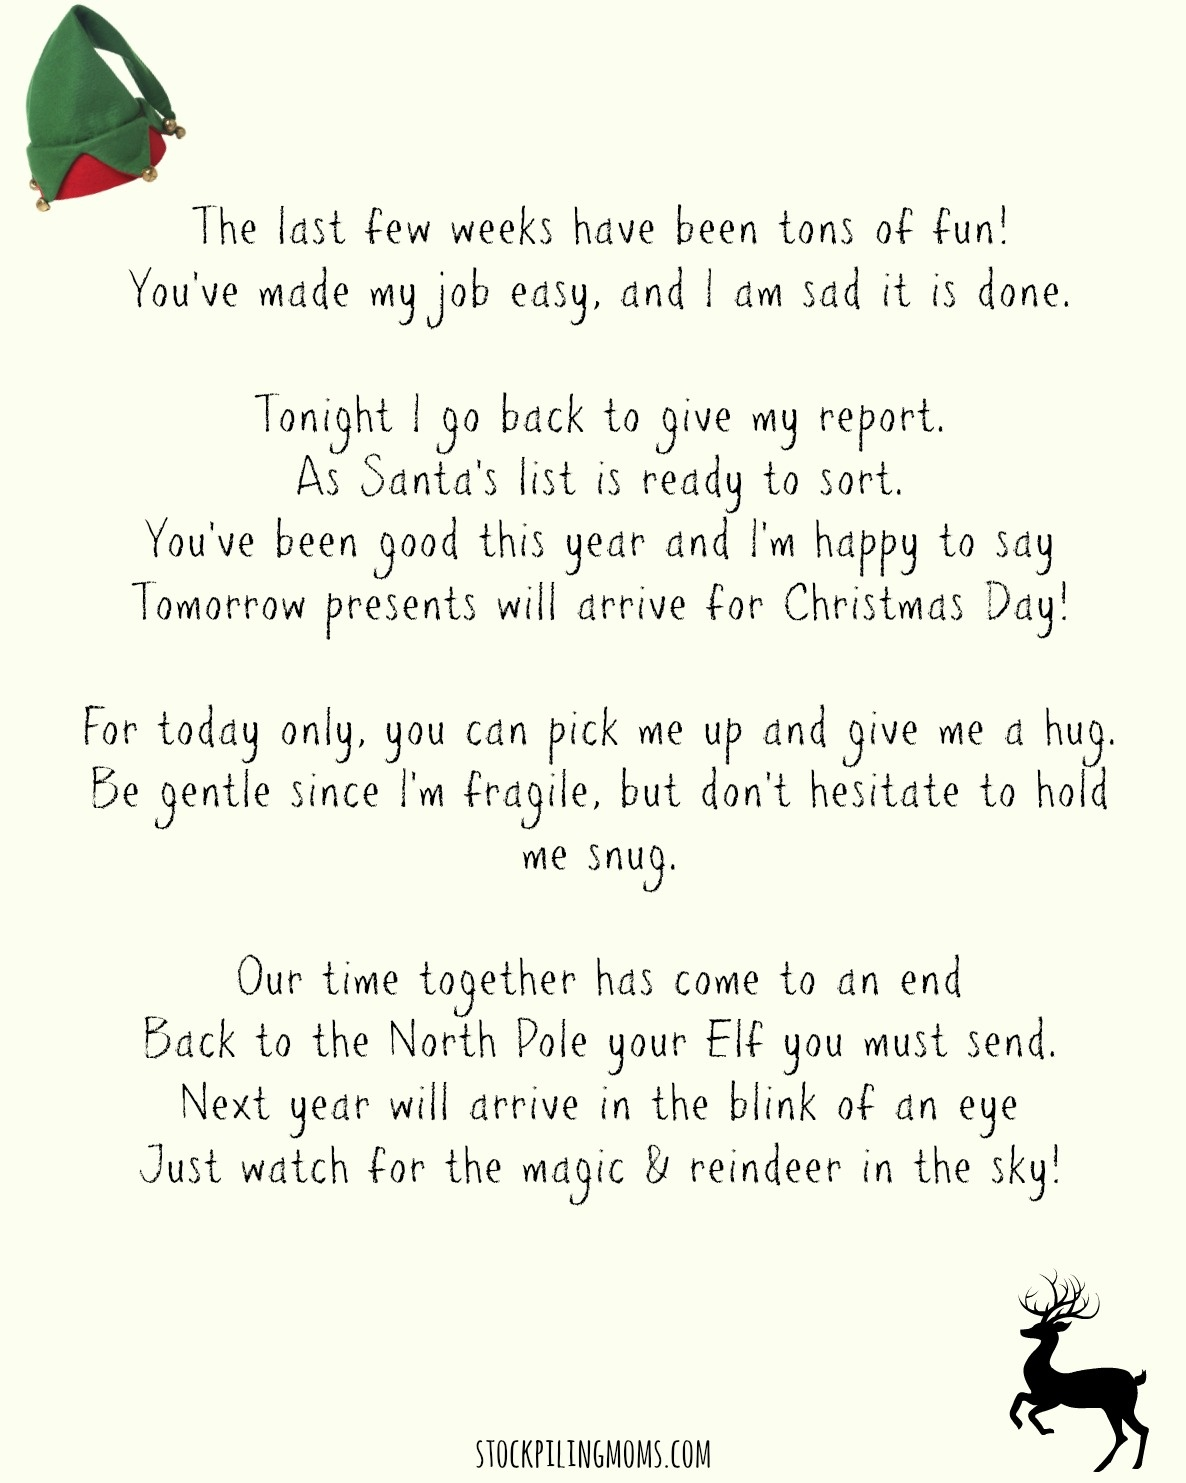 Elf On A Shelf Goodbye Letter Printable - Elf On The Shelf Goodbye Letter Free Printable